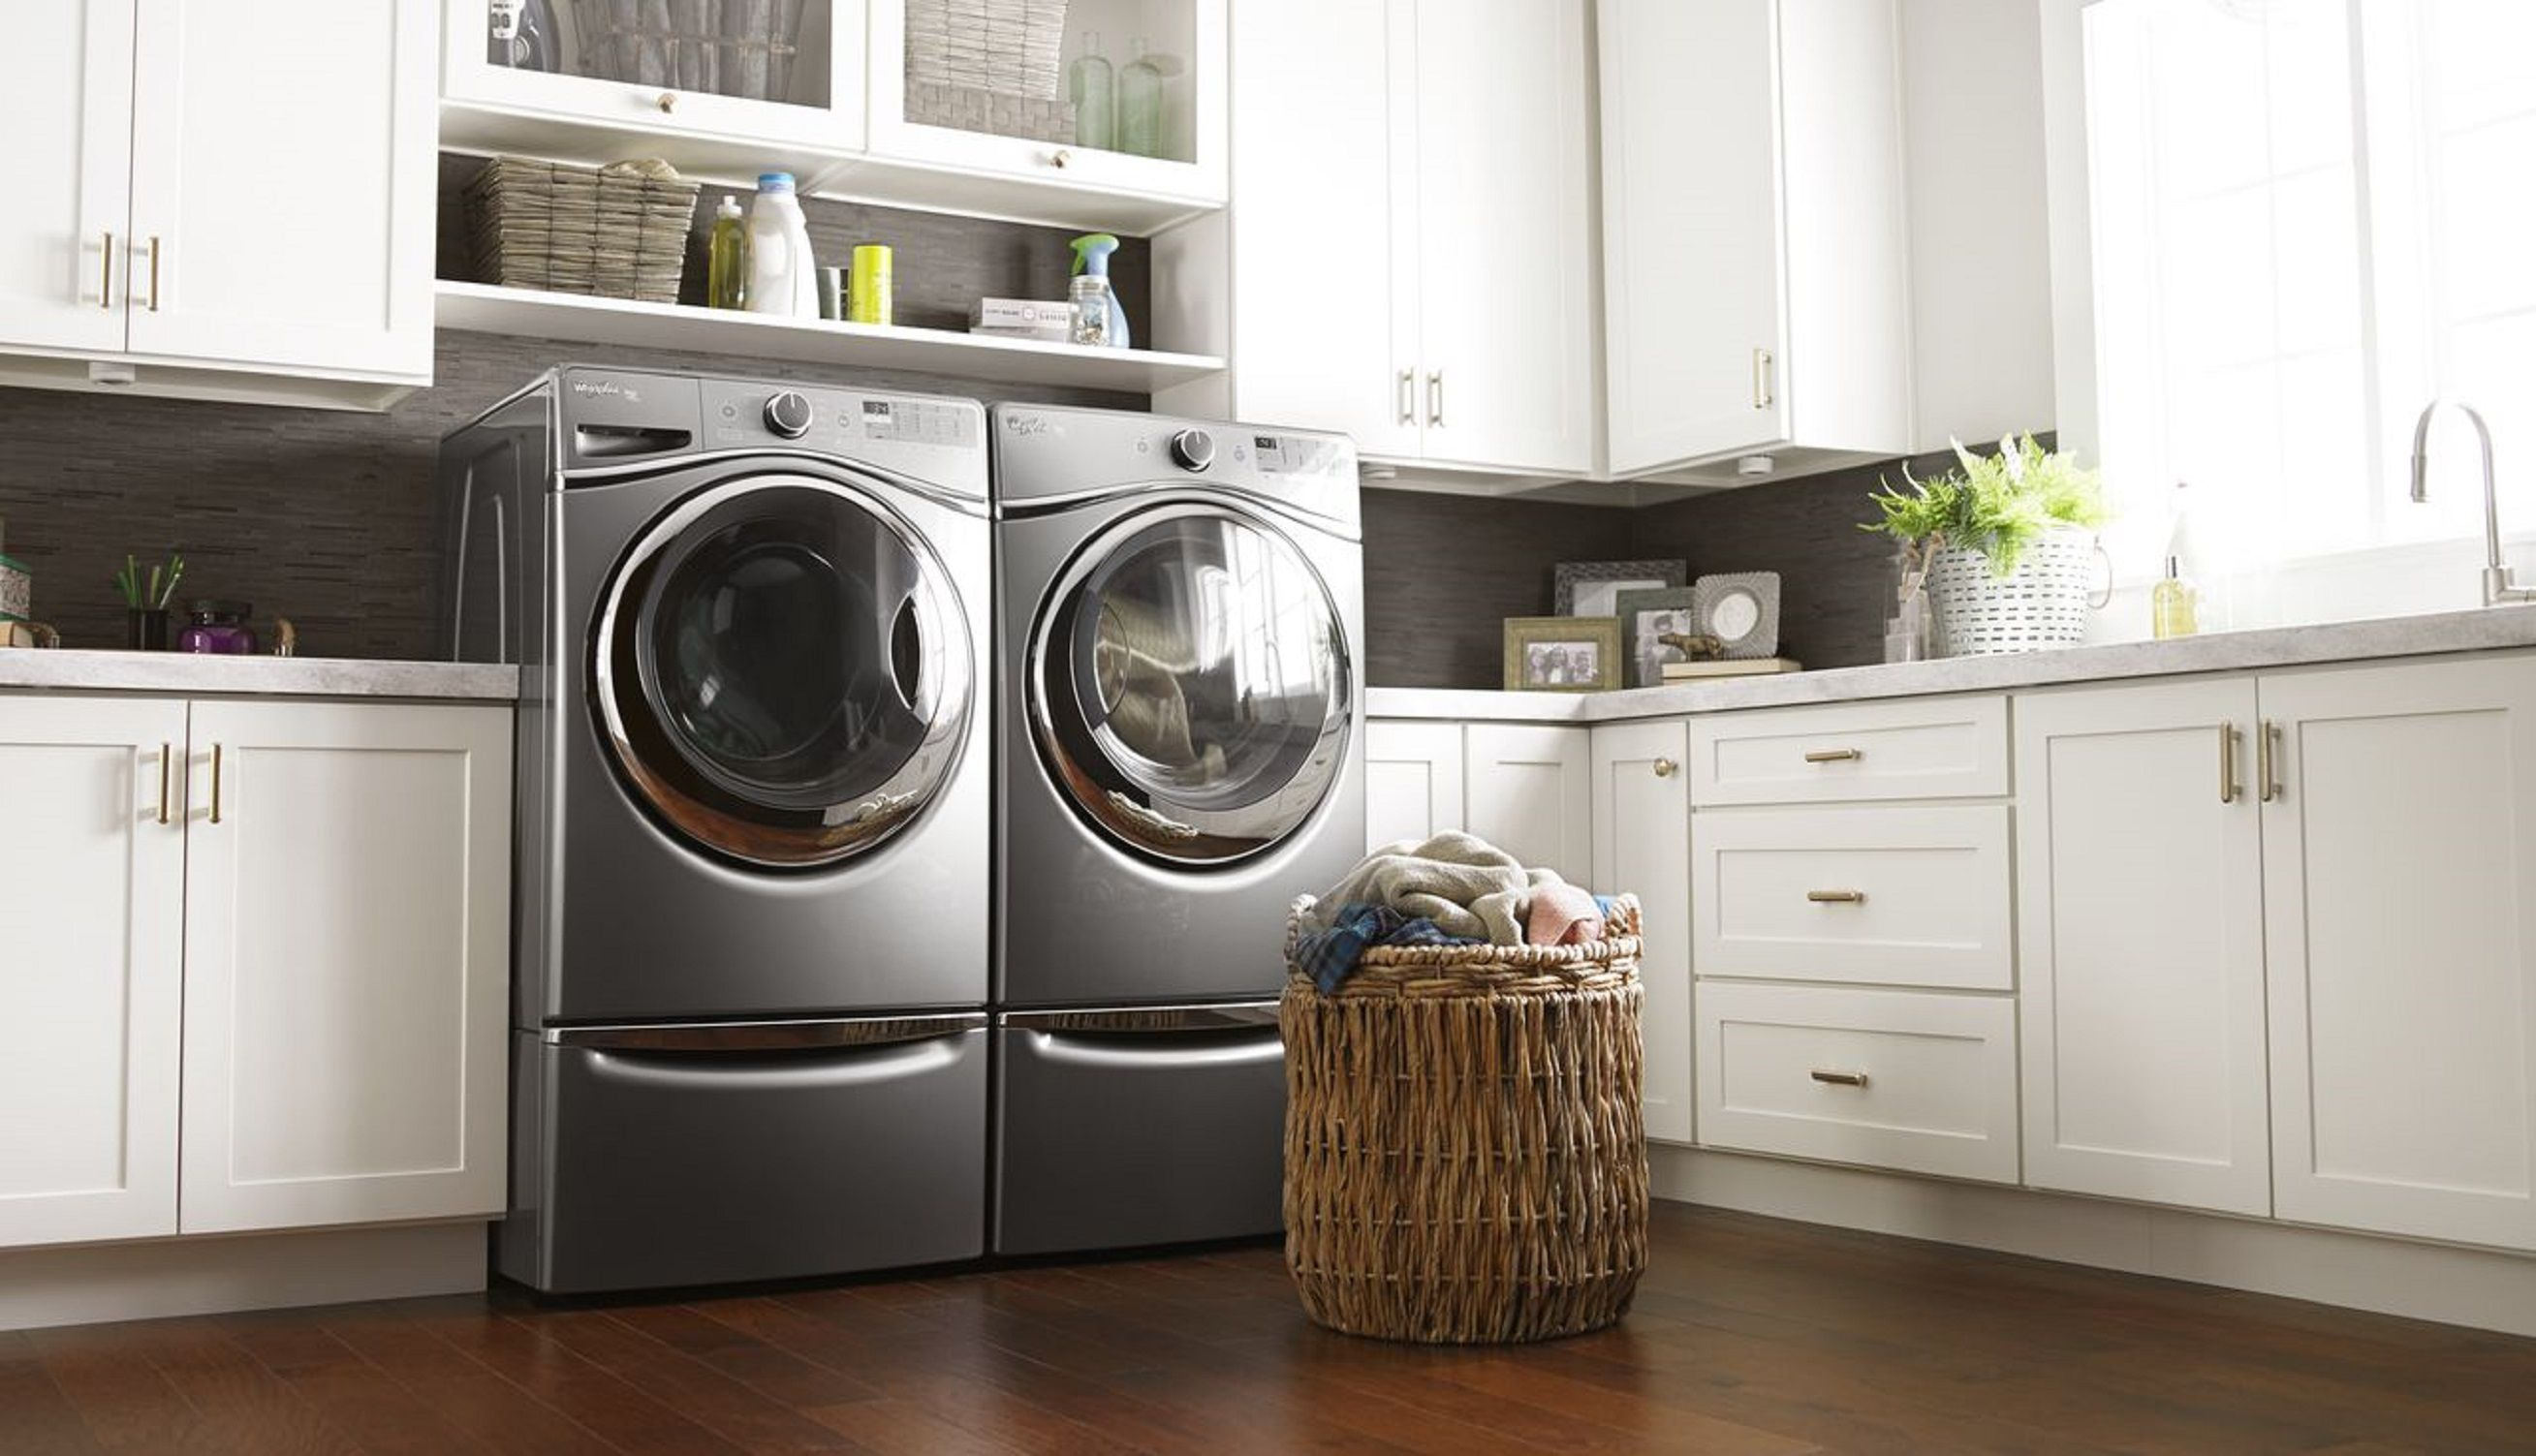 appliances washer to whirlpool ft image item chrome click front iec cu duet change washers laundry product load pedestal shadow